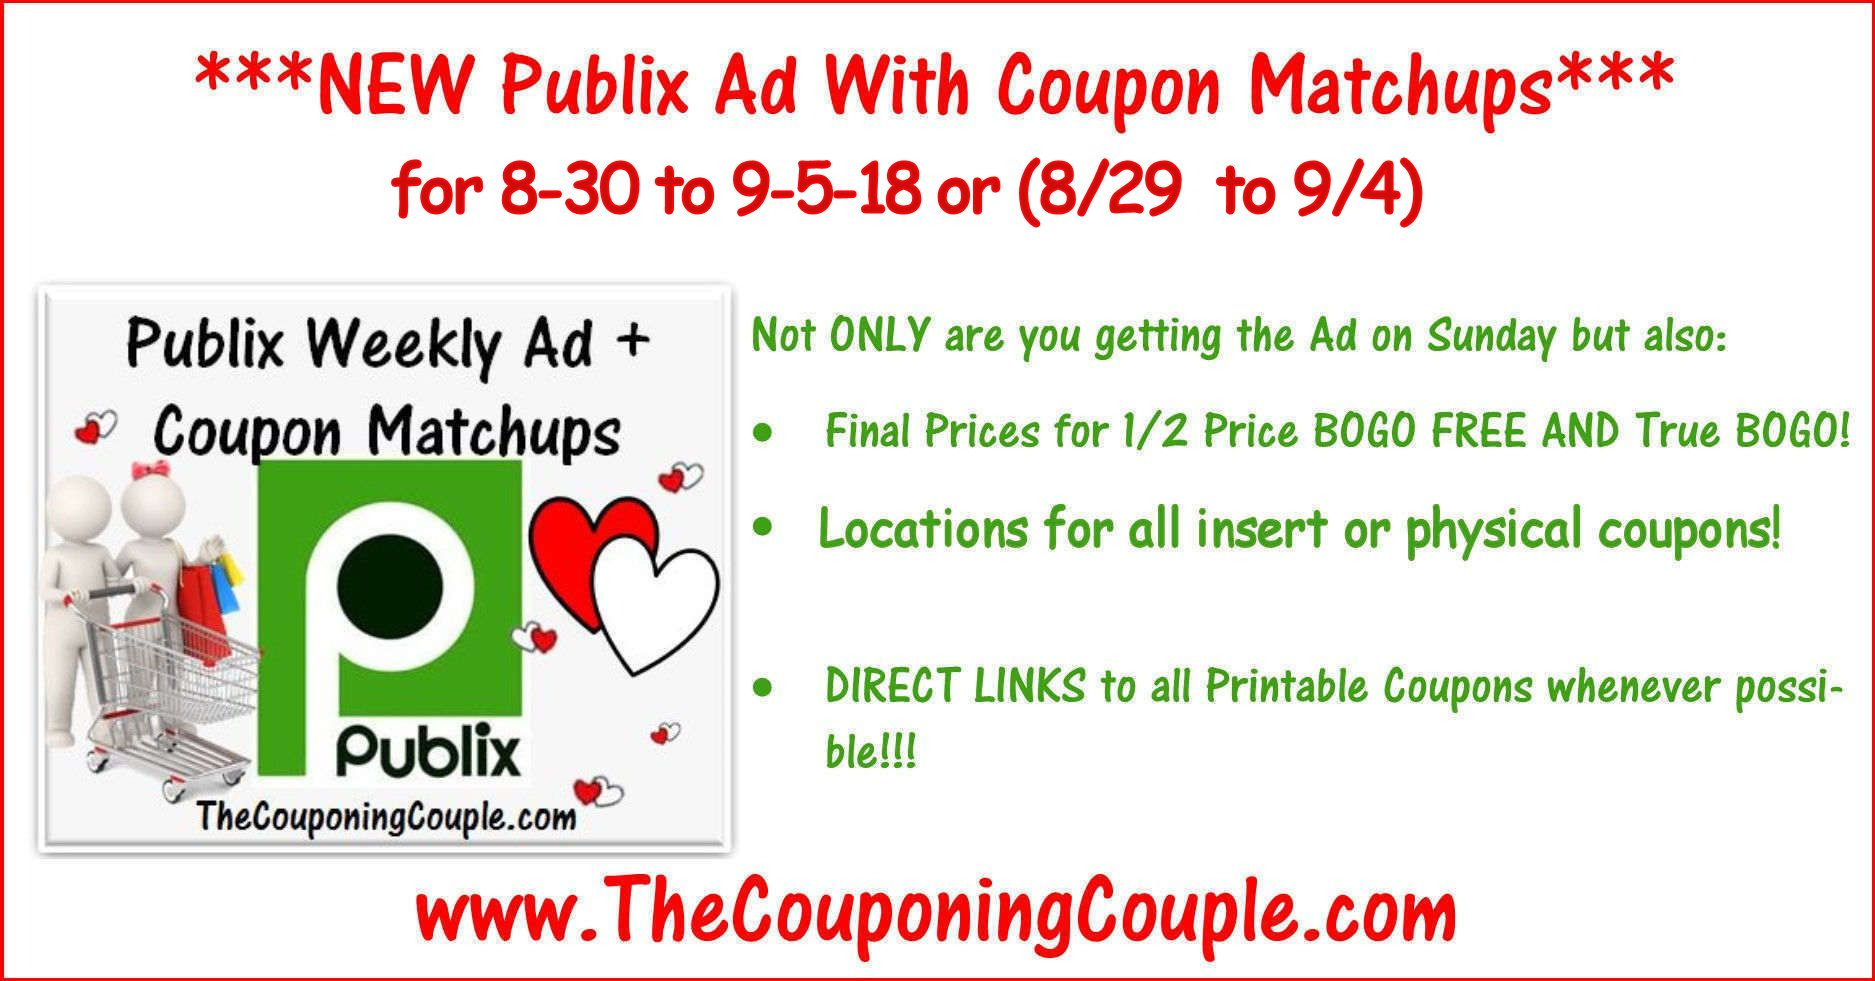 Publix Coupon Matchups for 8-30 to 9-5-18 or (8/29 to 9/4) | Pinterest